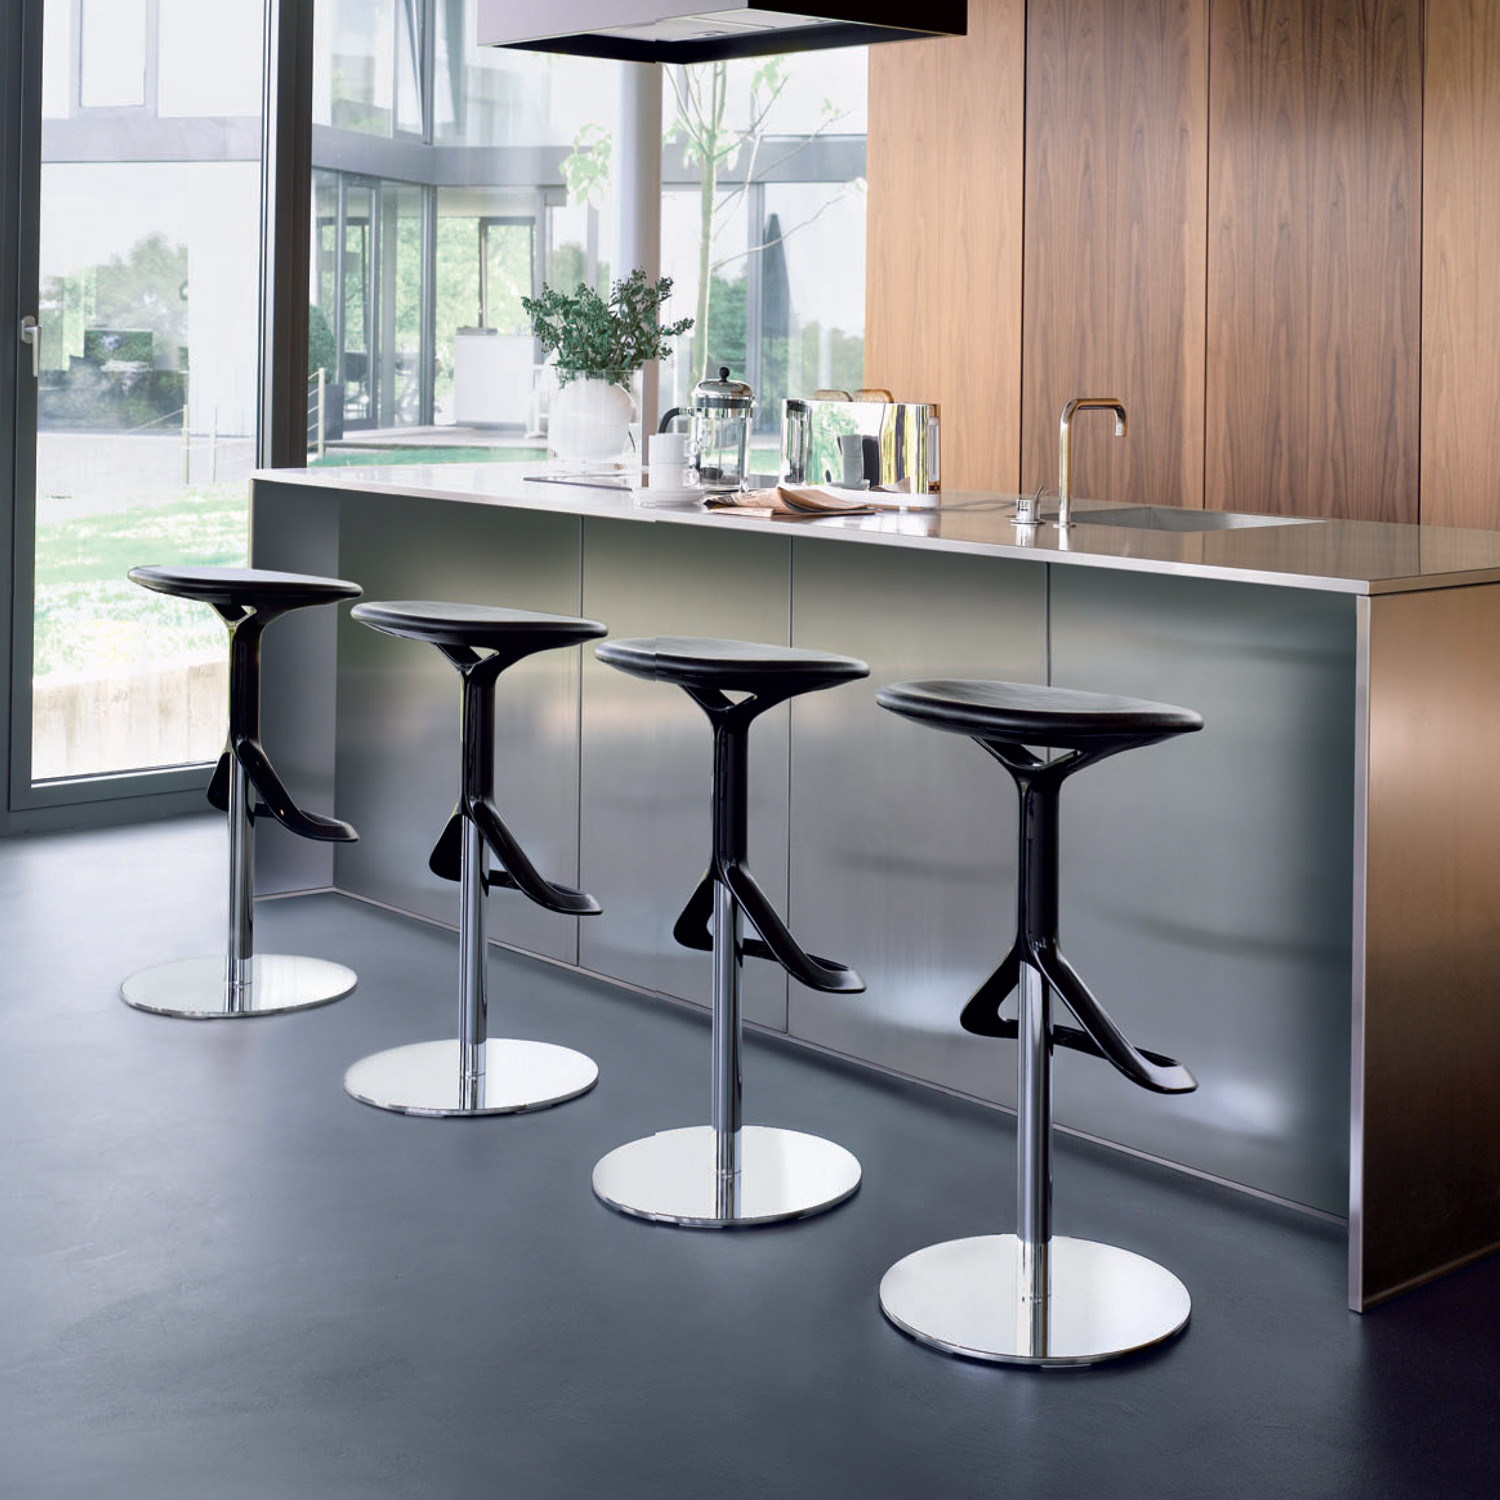 walter knoll lox bar stool. lox bar stool  contemporary barstools  apres furniture